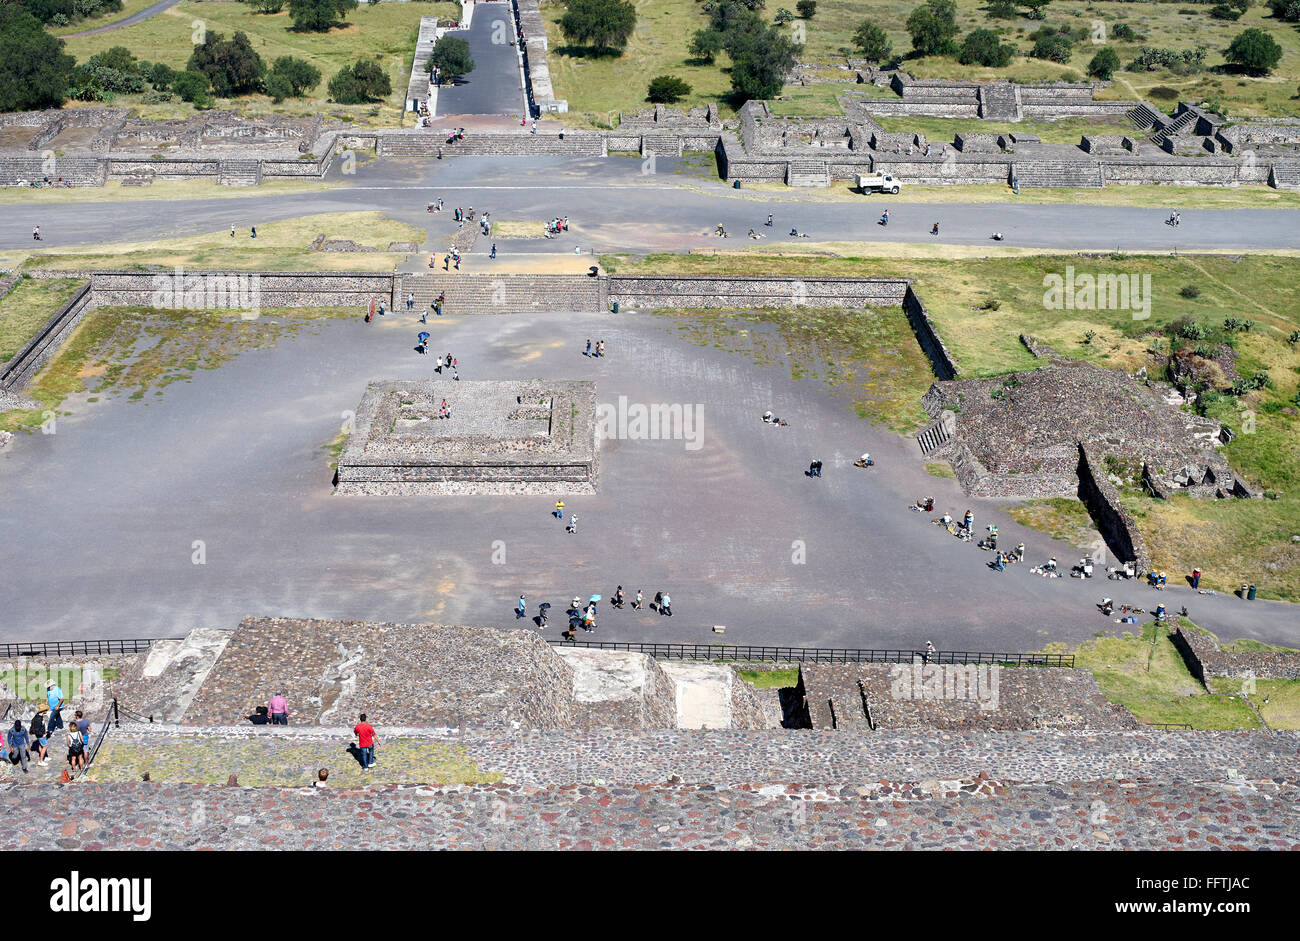 Top View on a part of the Pyramids of Teotihuacán in Mexico - Stock Image